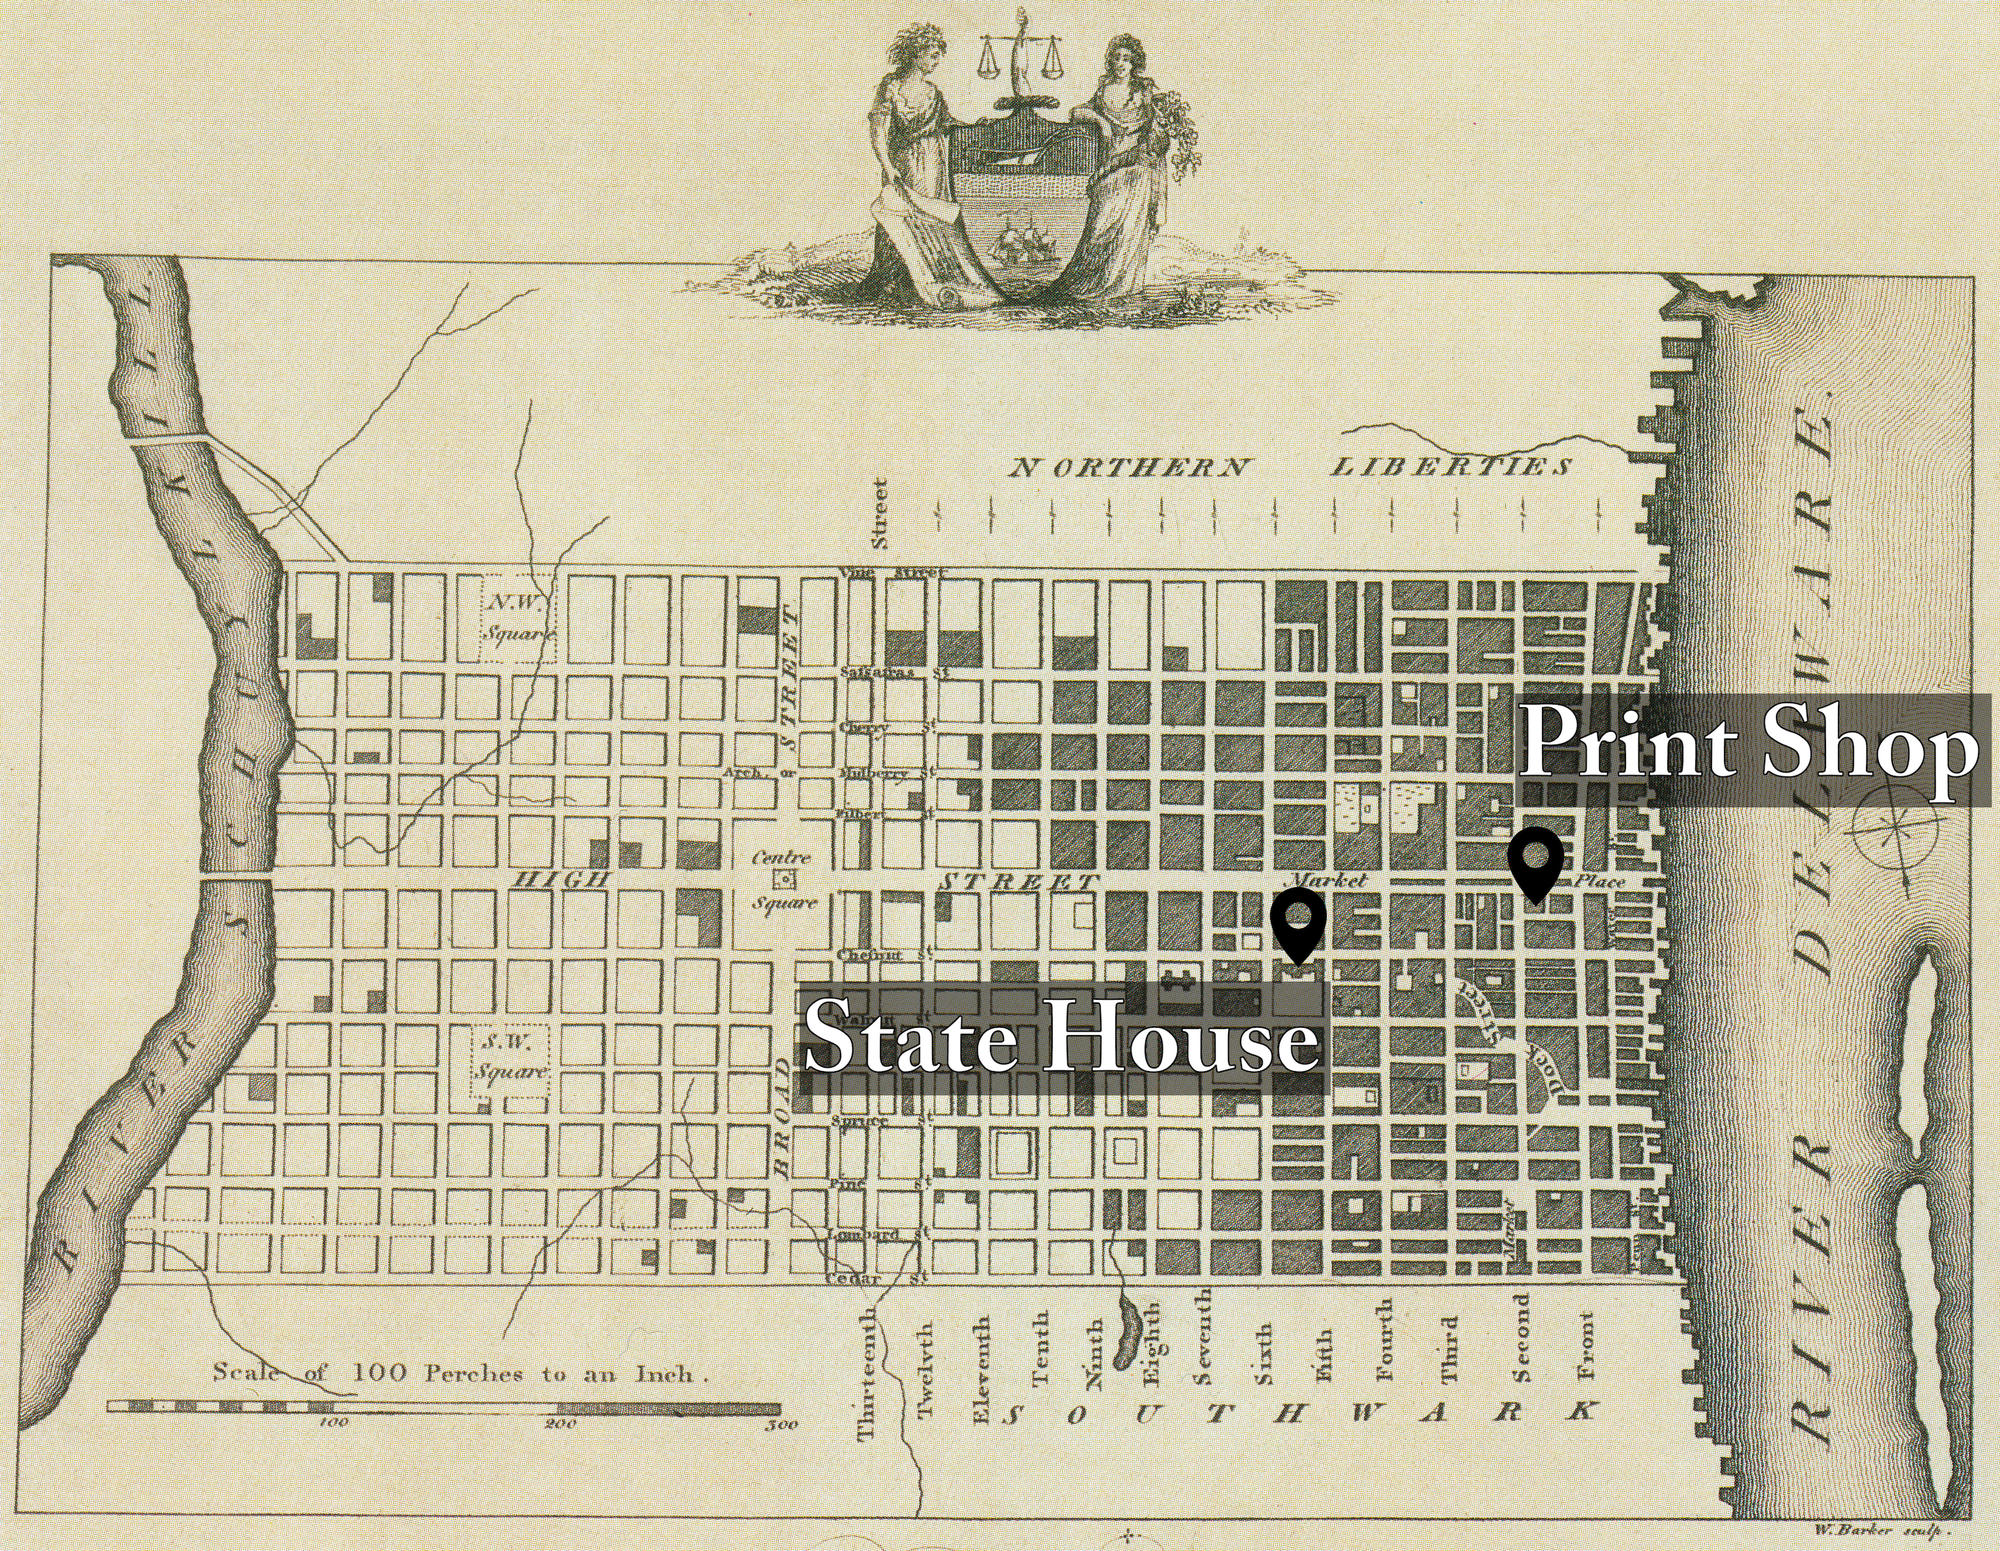 Plan of the City of Philadelphia from Birch's Views of Philadelphia, 1800